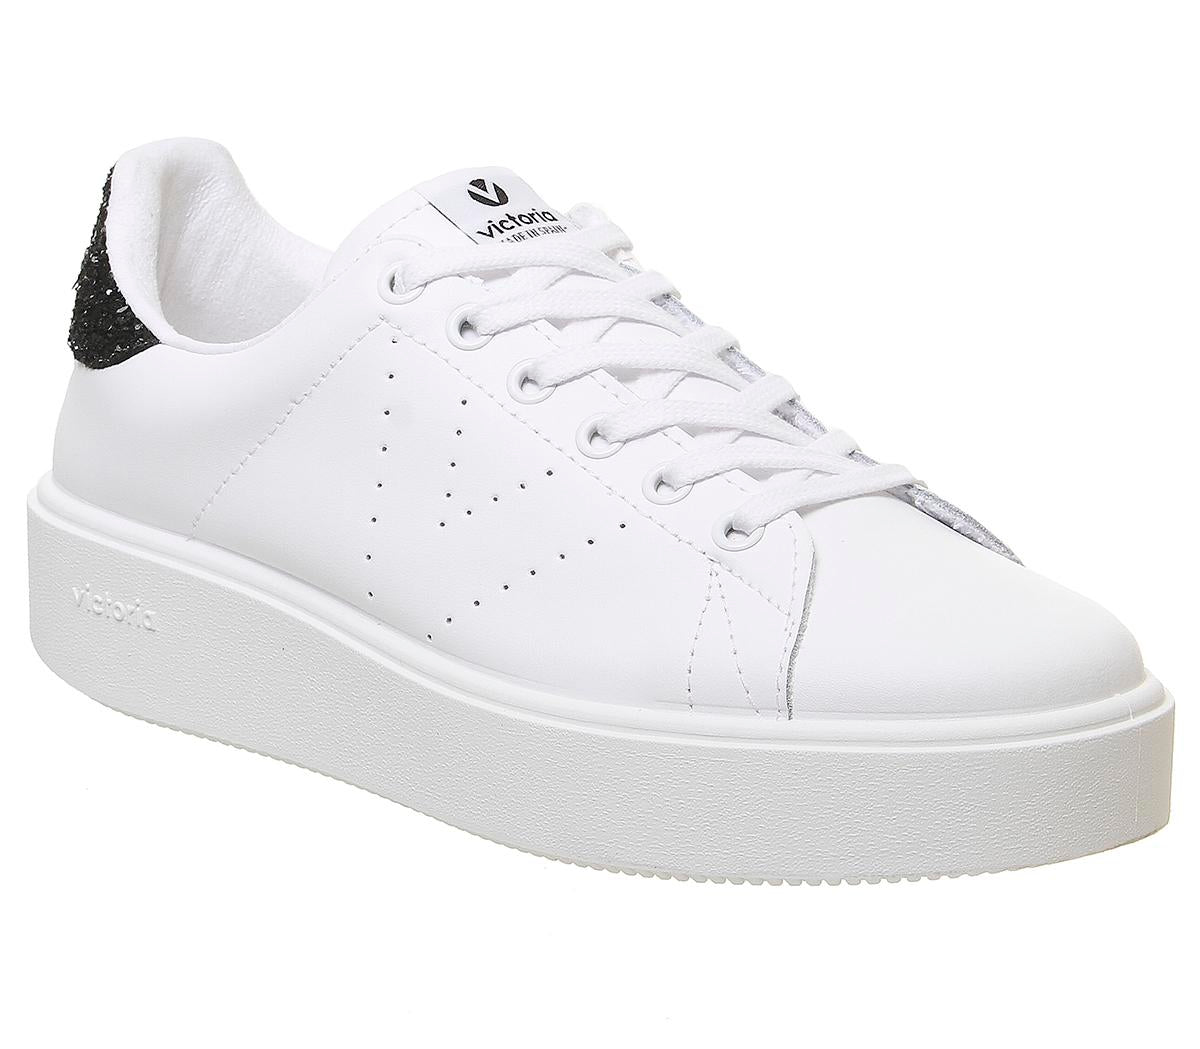 Womens Victoria Utopia White Black Glitter